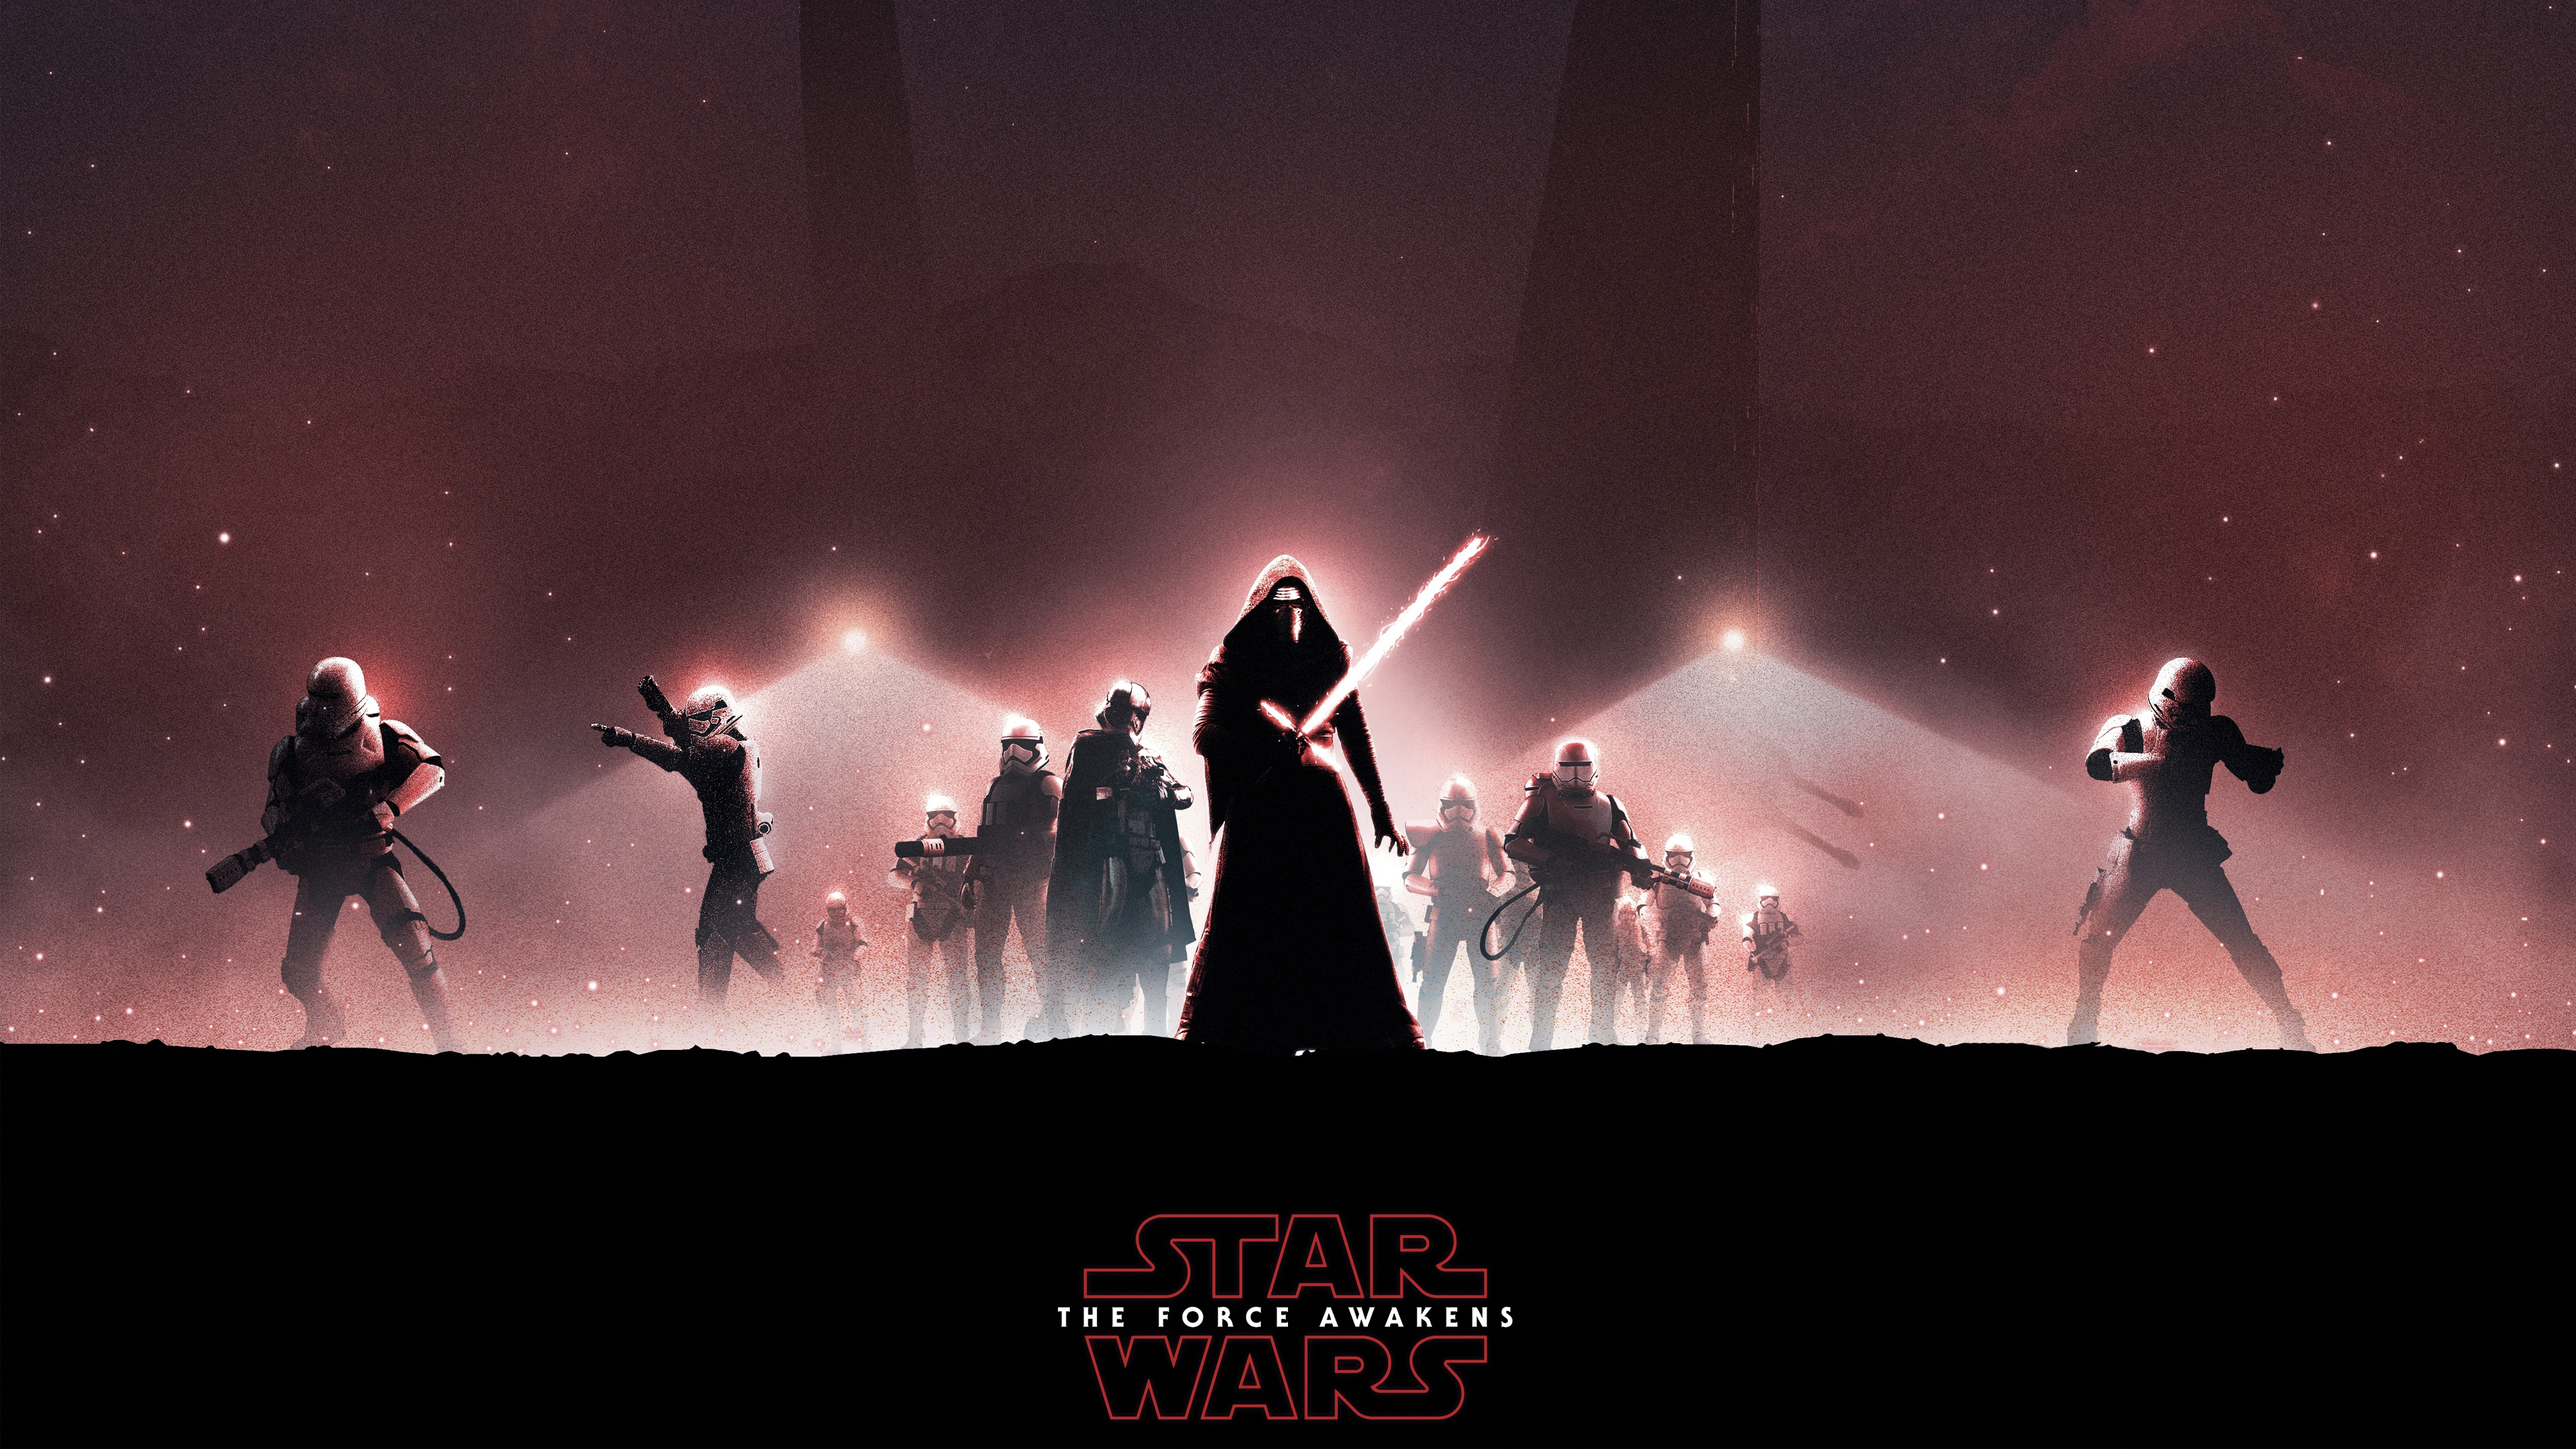 Kylo Ren Poster HD Movies 4k Wallpapers Images Backgrounds